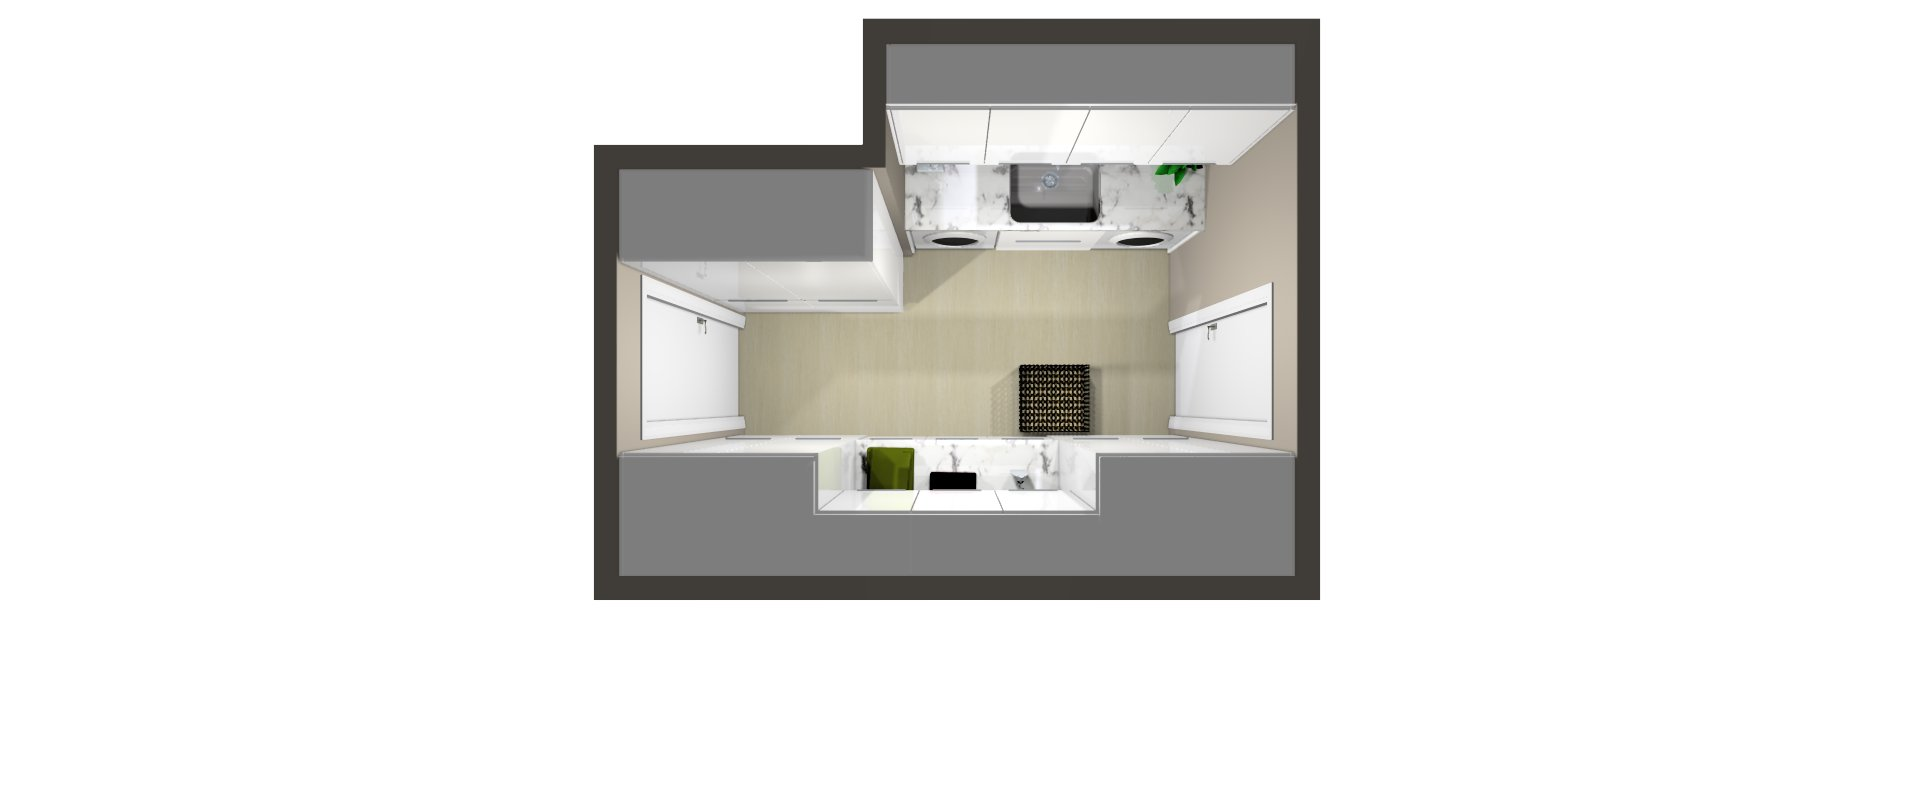 S Kitchen Picture